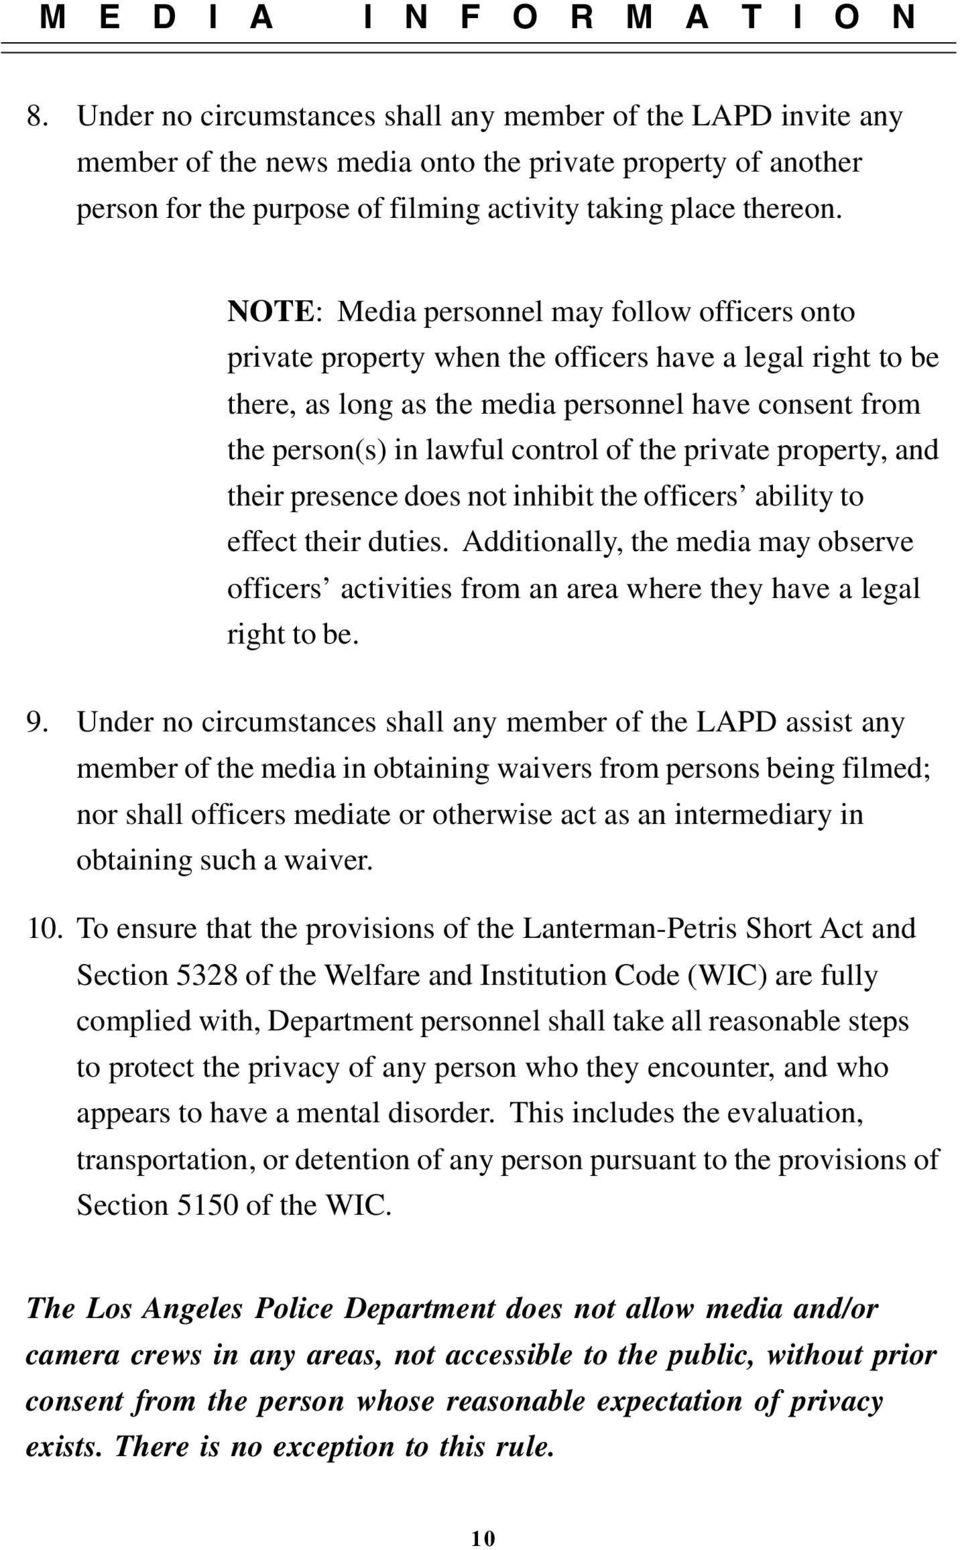 NOTE: Media personnel may follow officers onto private property when the officers have a legal right to be there, as long as the media personnel have consent from the person(s) in lawful control of